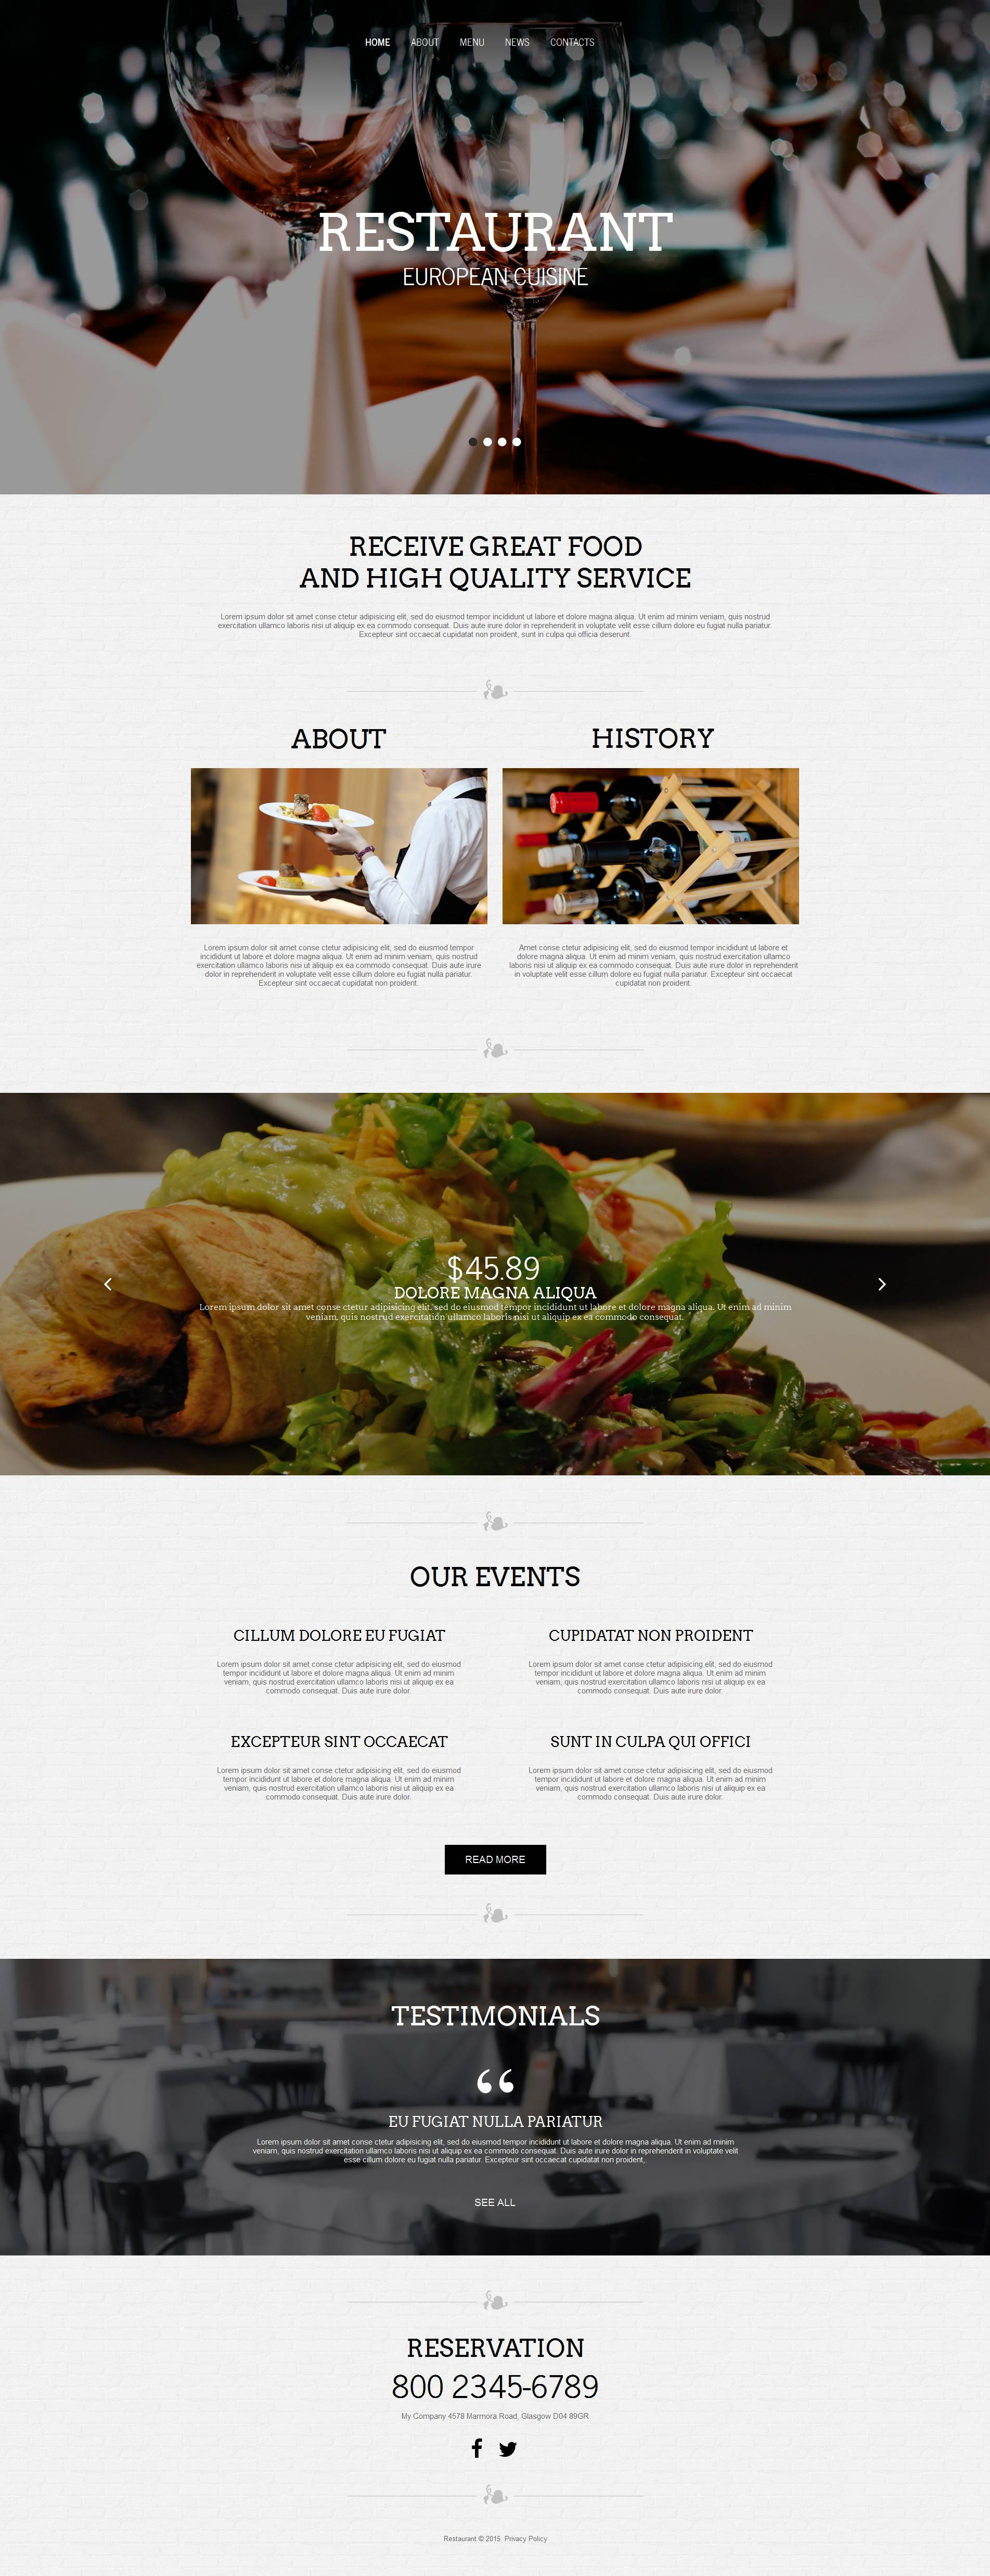 The European Restaurant Moto CMS HTML Design 53062, one of the best Moto CMS HTML templates of its kind (cafe and restaurant, most popular), also known as european restaurant Moto CMS HTML template, fish Moto CMS HTML template, marine Moto CMS HTML template, products Moto CMS HTML template, calamari Moto CMS HTML template, squid Moto CMS HTML template, oyster Moto CMS HTML template, shrimp Moto CMS HTML template, services Moto CMS HTML template, cafe Moto CMS HTML template, food Moto CMS HTML template, drink Moto CMS HTML template, menu Moto CMS HTML template, waiters Moto CMS HTML template, dish Moto CMS HTML template, taste Moto CMS HTML template, tasty Moto CMS HTML template, flavor Moto CMS HTML template, reservation and related with european restaurant, fish, marine, products, calamari, squid, oyster, shrimp, services, cafe, food, drink, menu, waiters, dish, taste, tasty, flavor, reservation, etc.